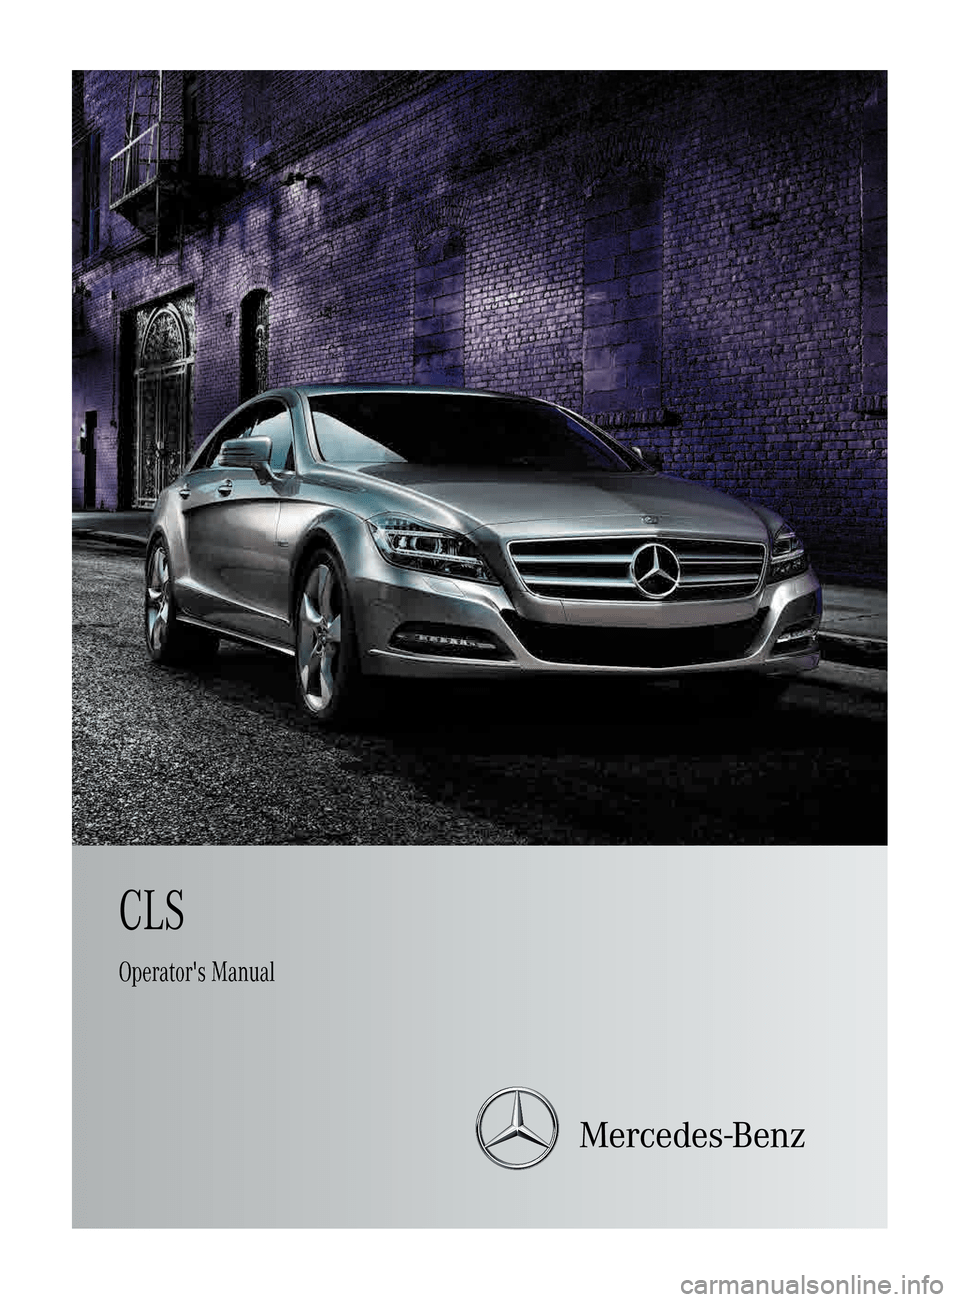 mercedes benz repair manual for cls